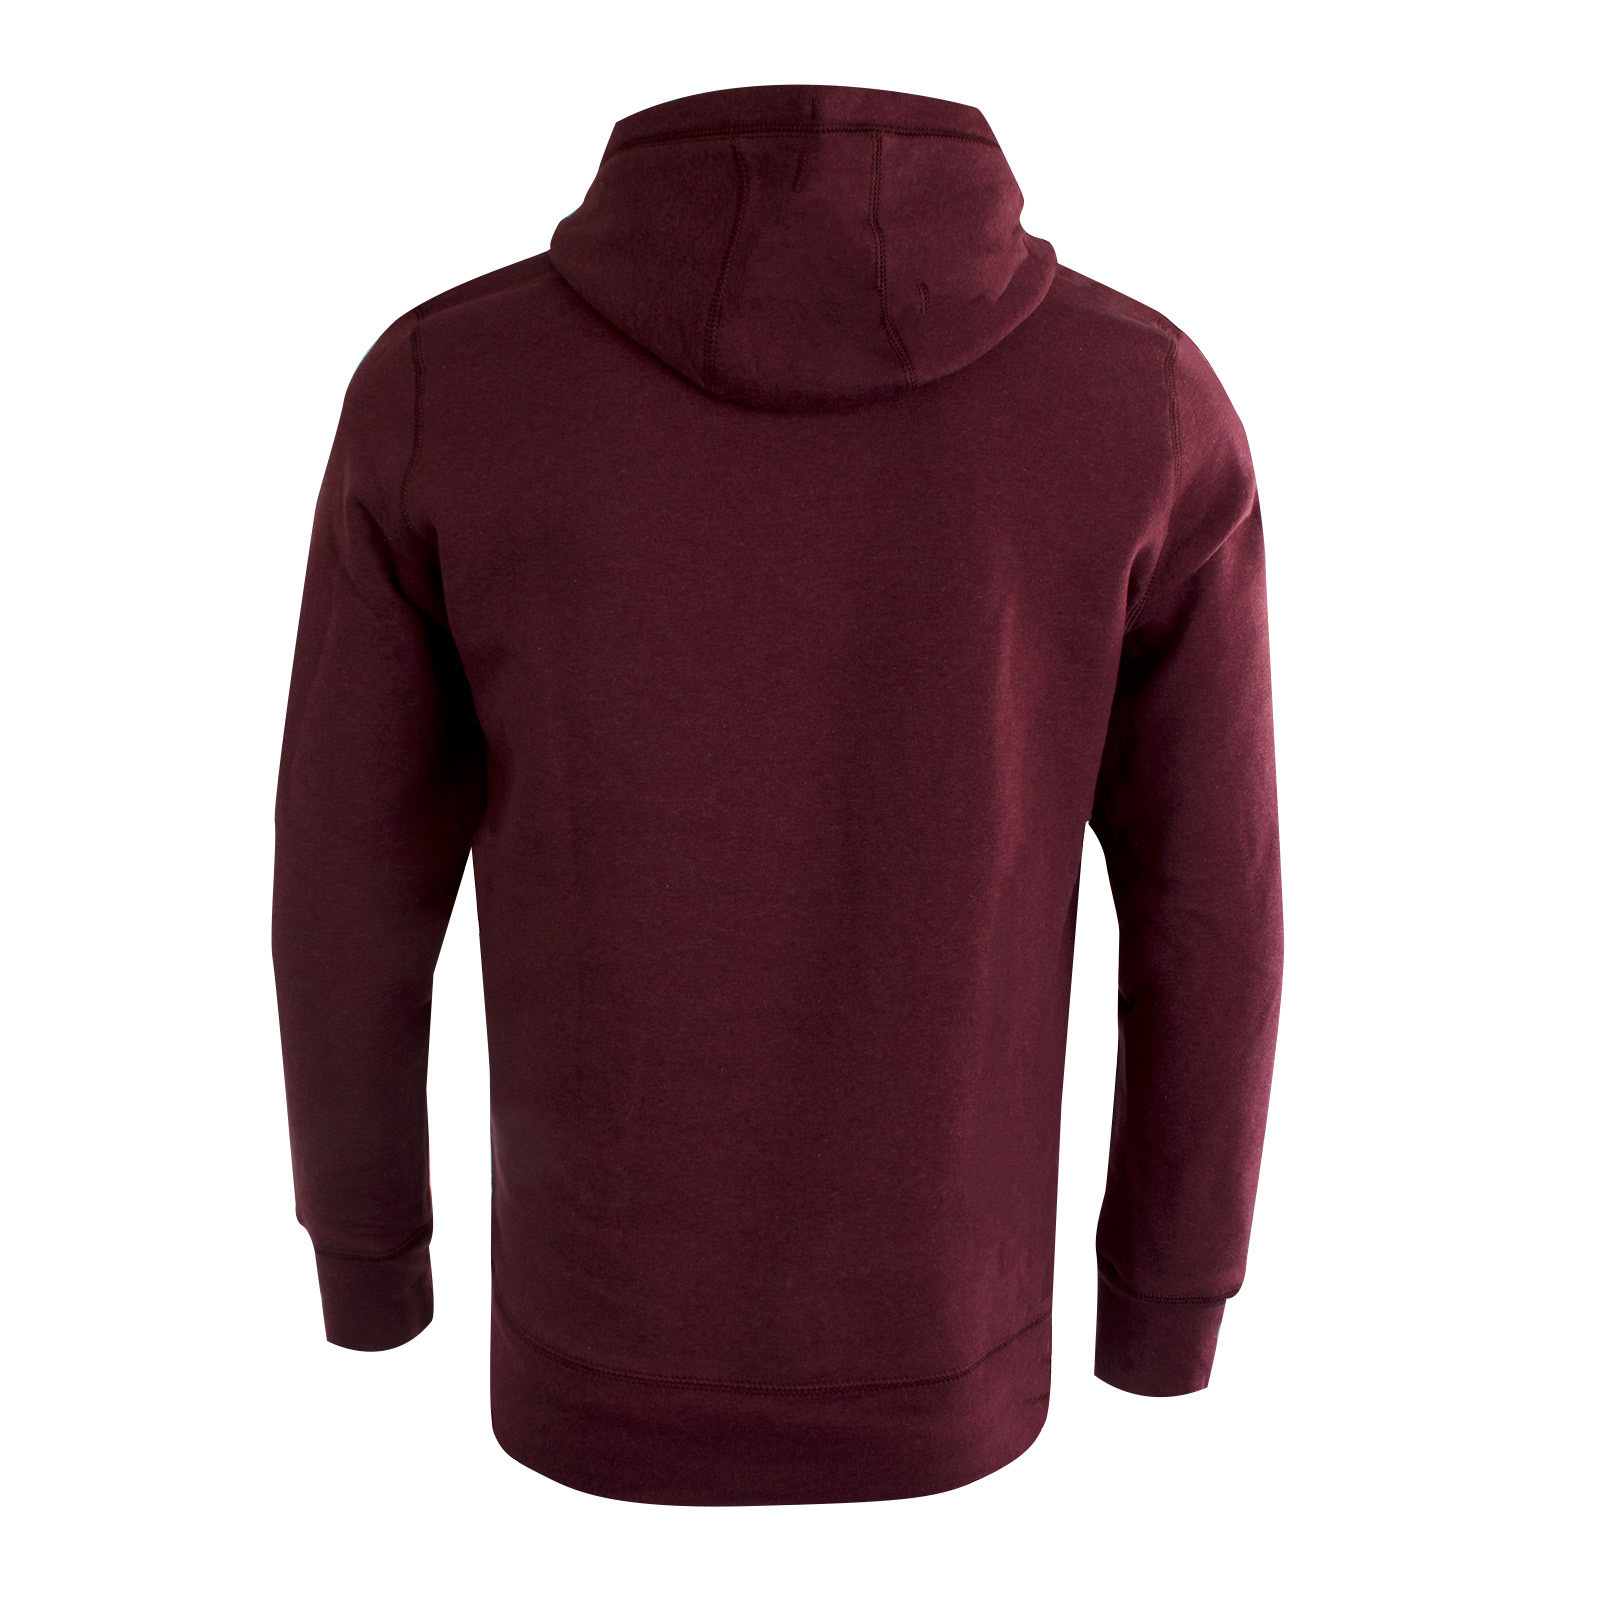 RAFC Hoodie Wine Heather-2